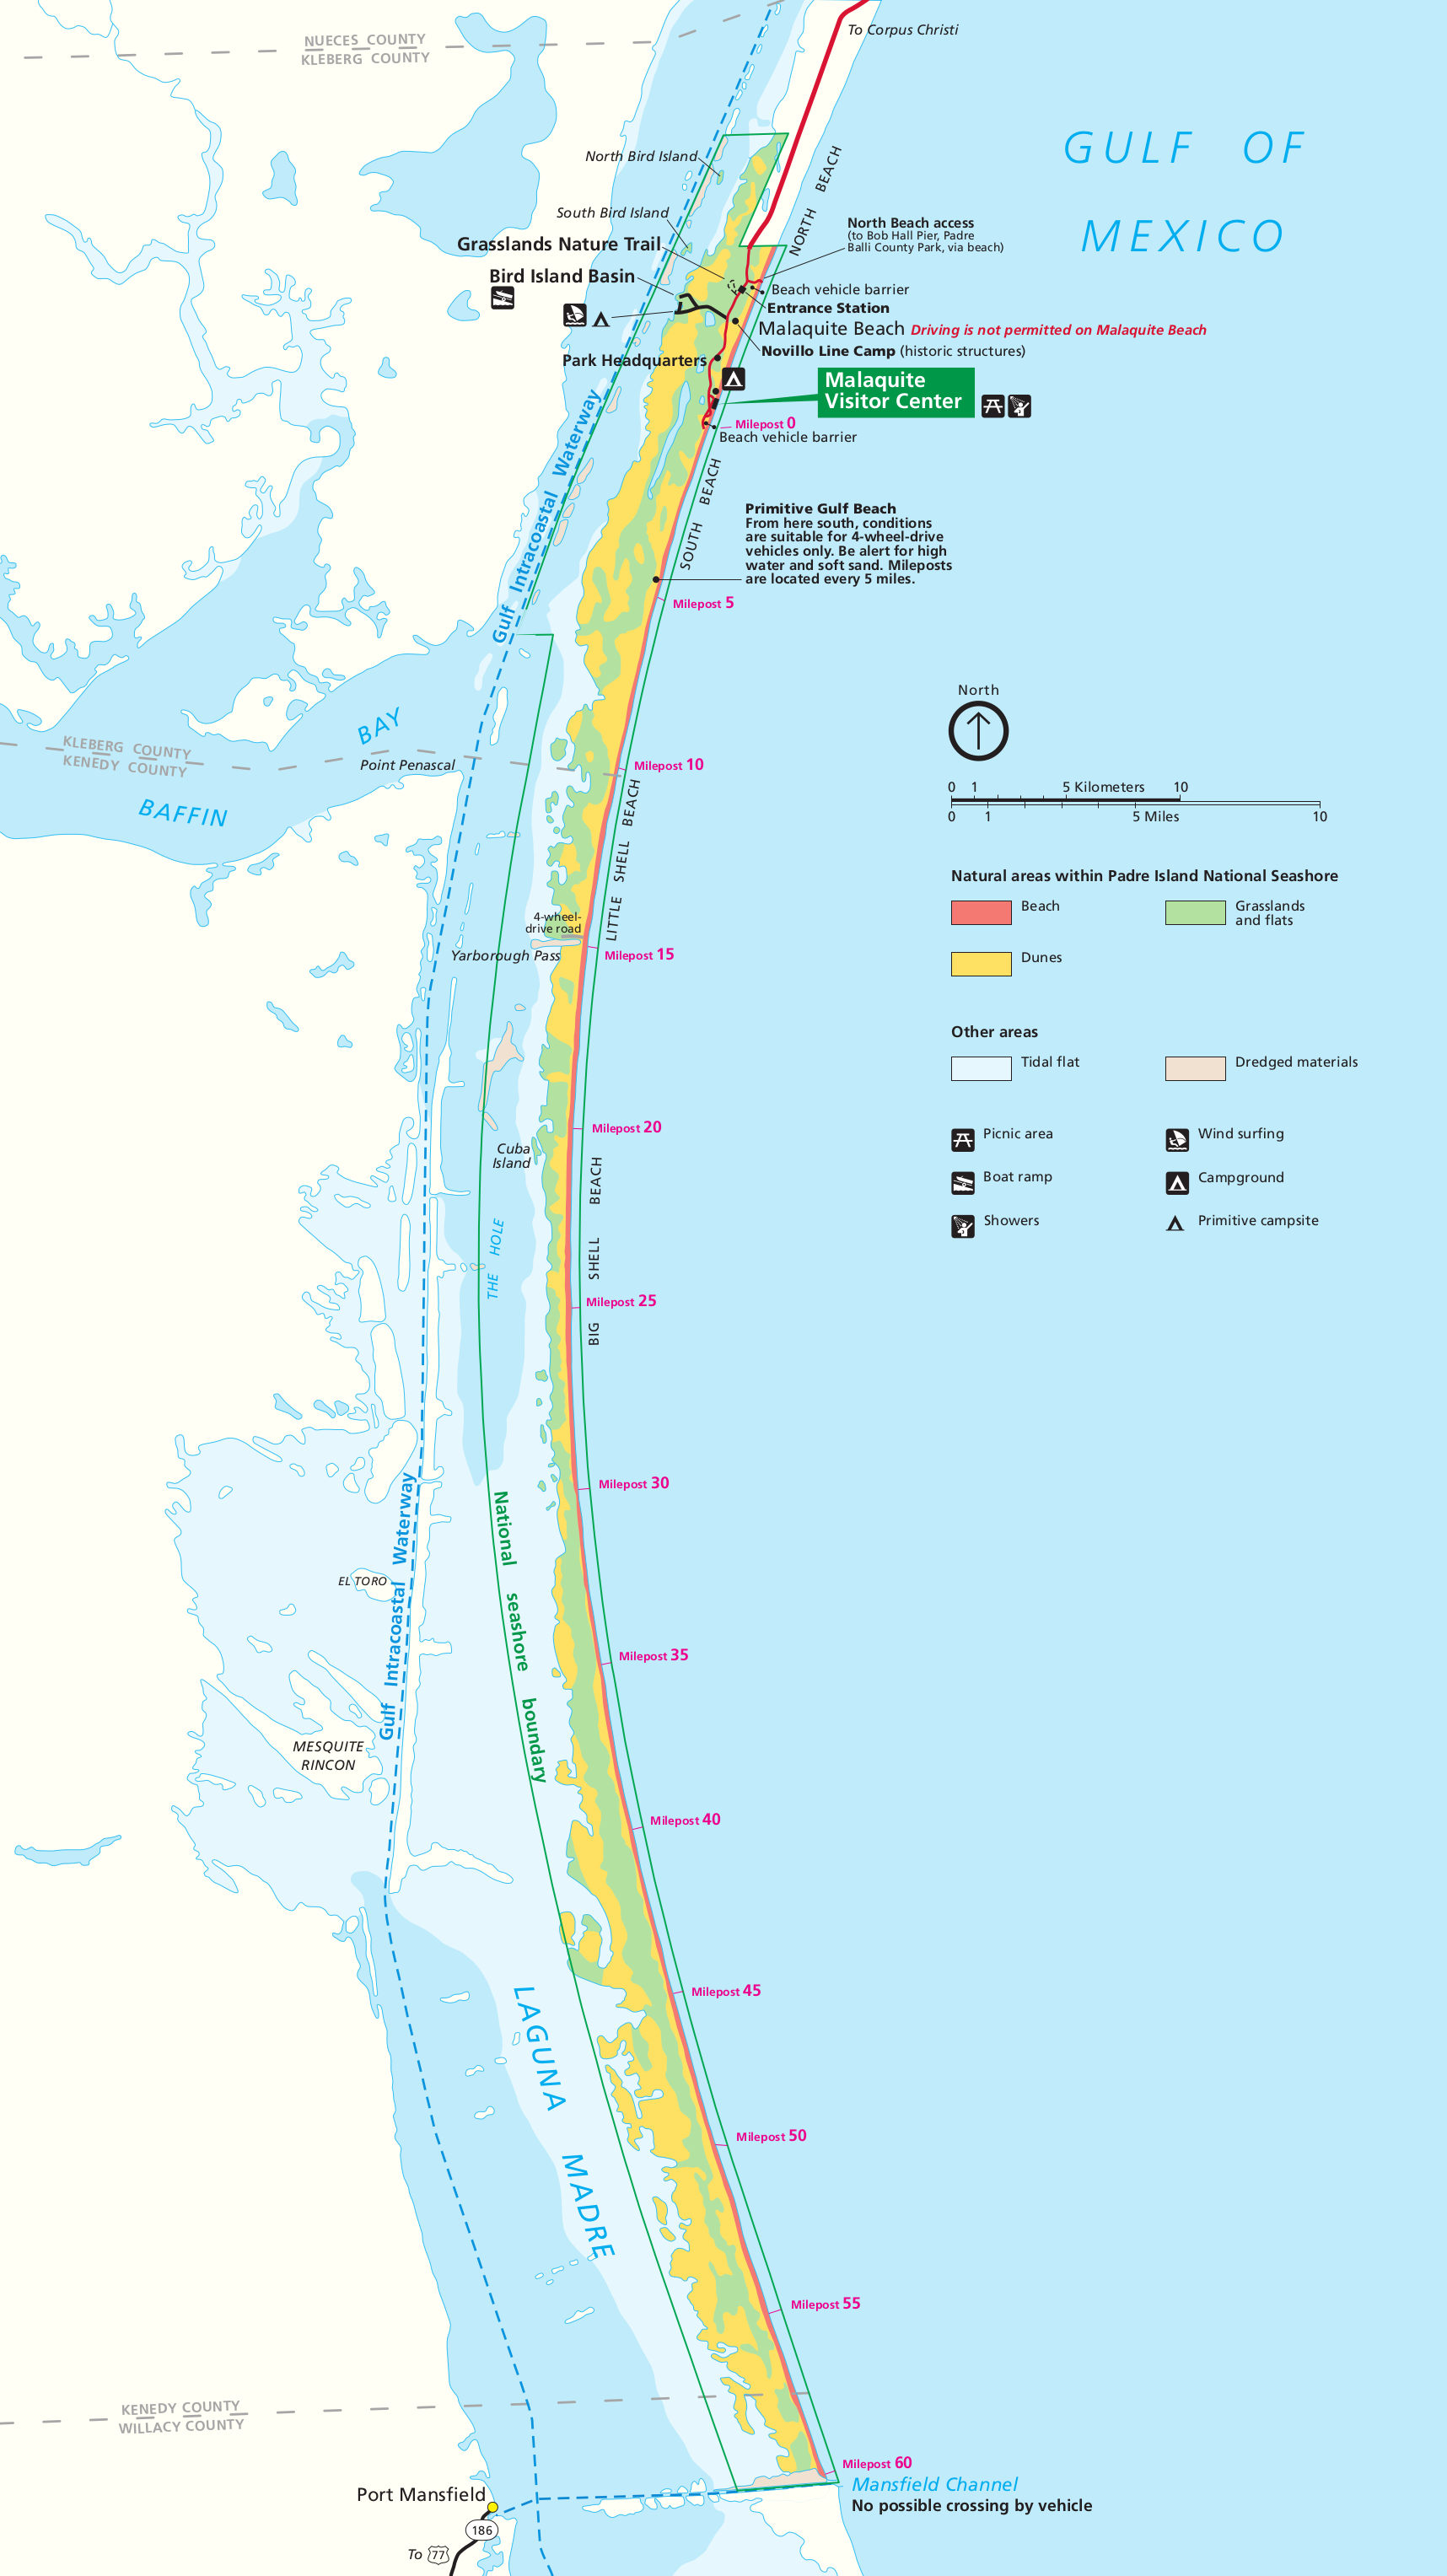 Map Of North Padre Island Texas Padre Island Maps | NPMaps.  just free maps, period.